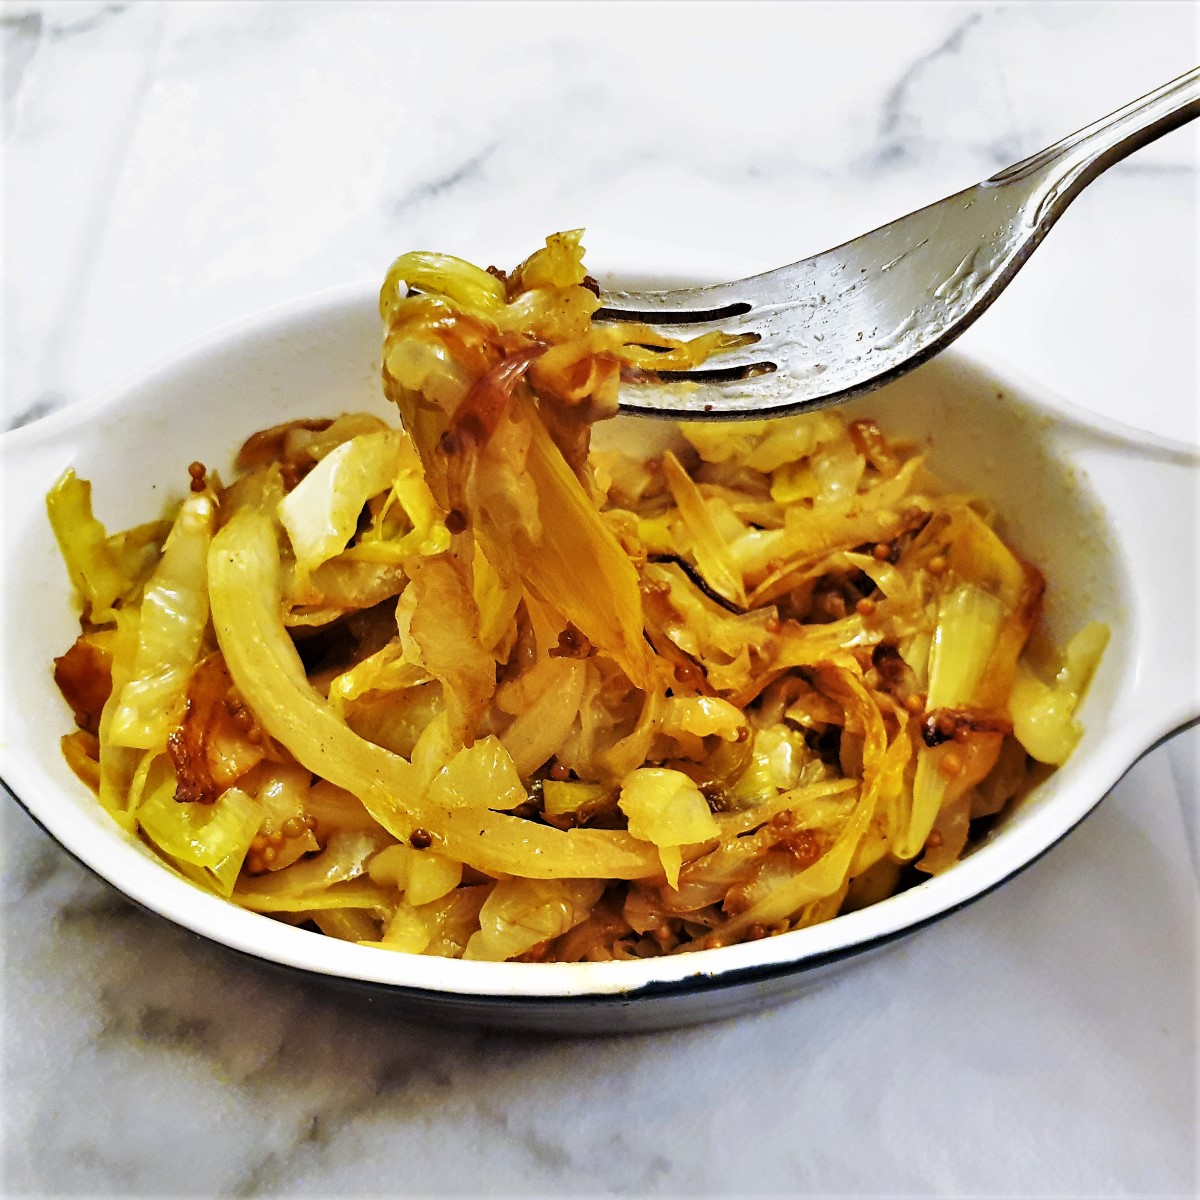 Sauteed cabbage and leeks in a dish.